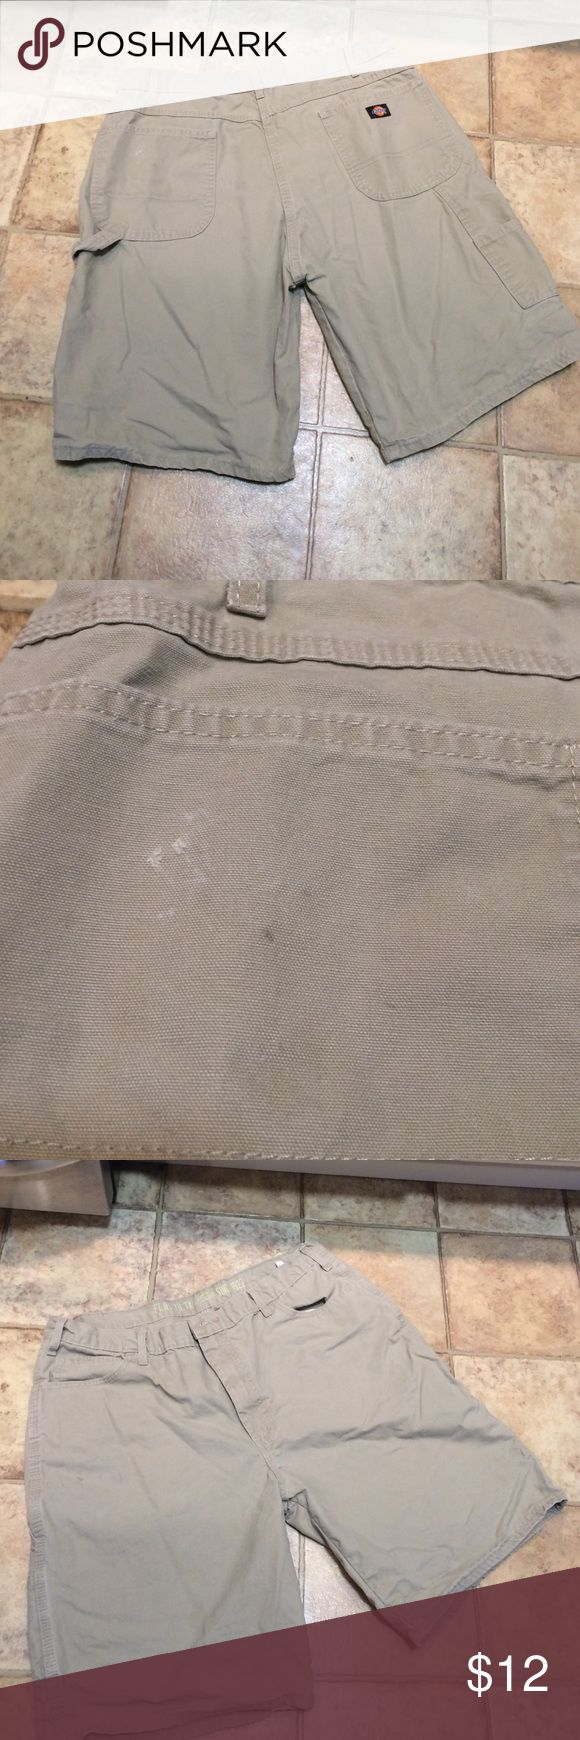 Dickies men's work shorts size 38 relaxed Loved has some flaws but in over good shape Dickies Shorts